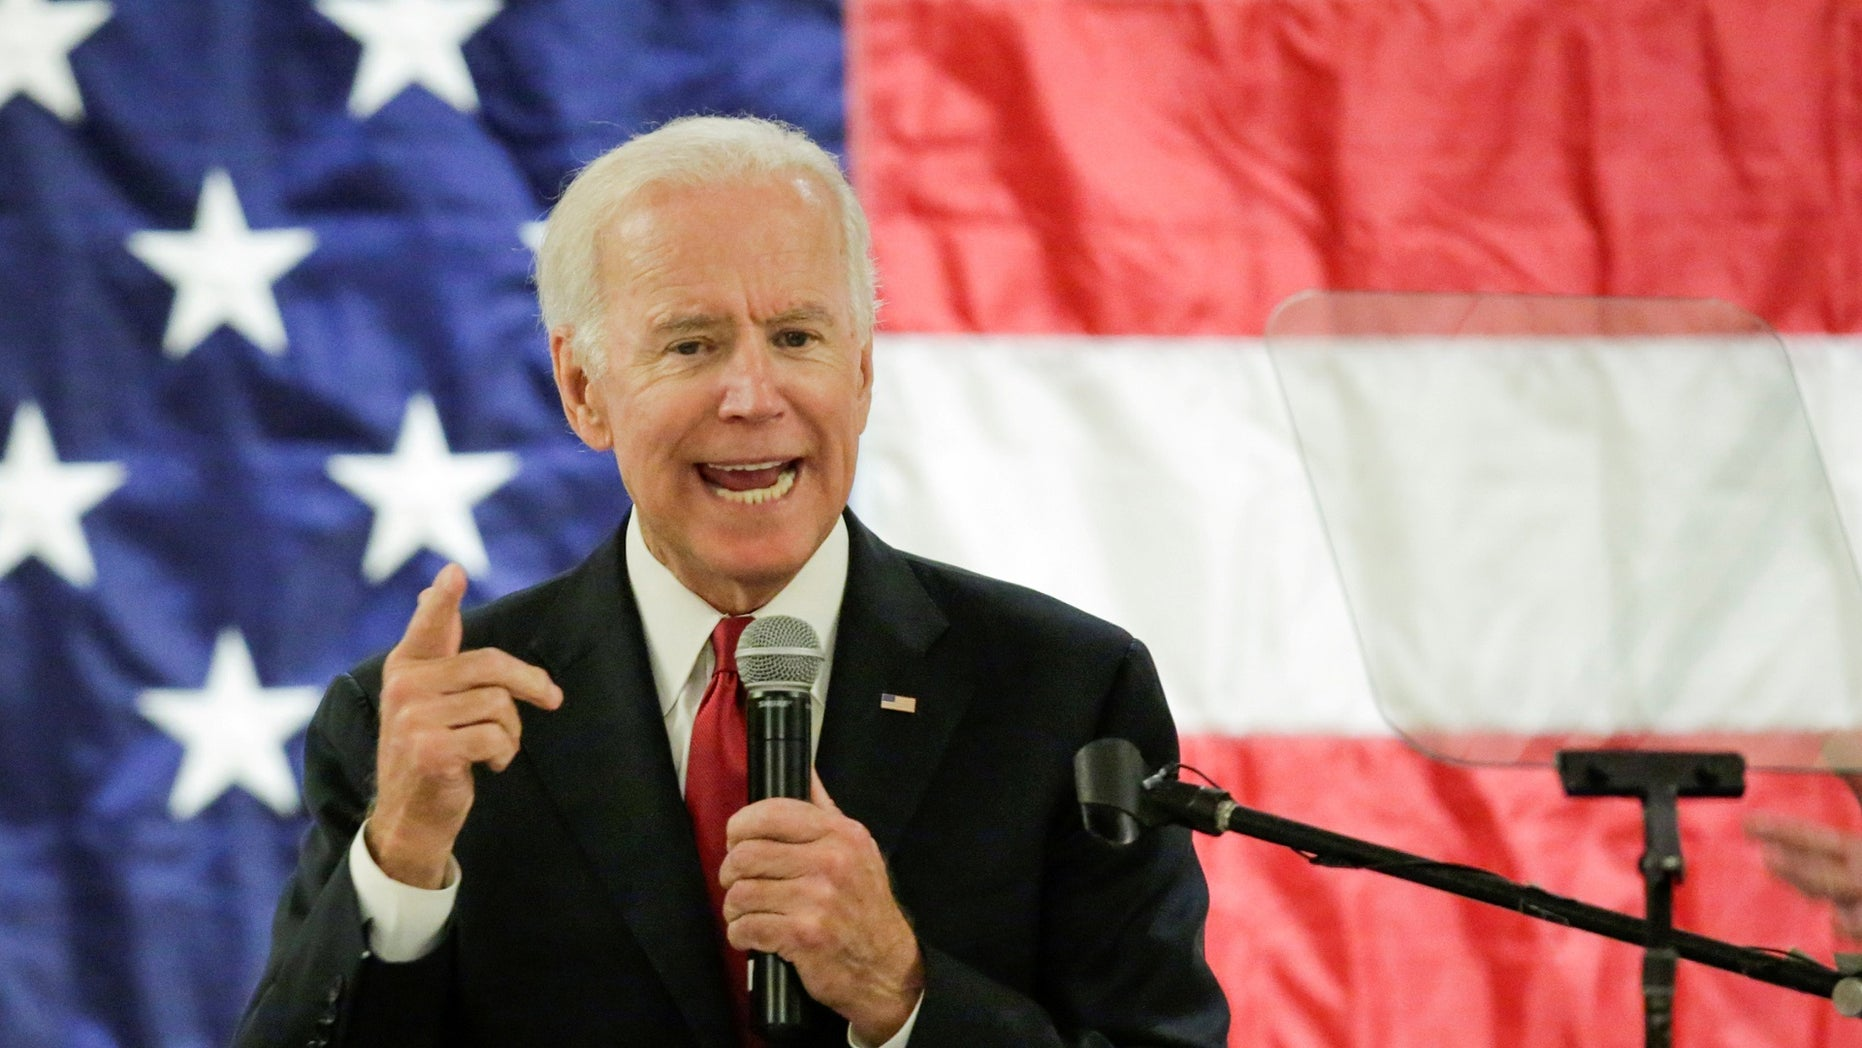 Former Vice President Joe Biden's potential 2020 presidential run may already be in jeopardy, Mark Steyn told Tucker Carlson on Monday night. (Reuters)